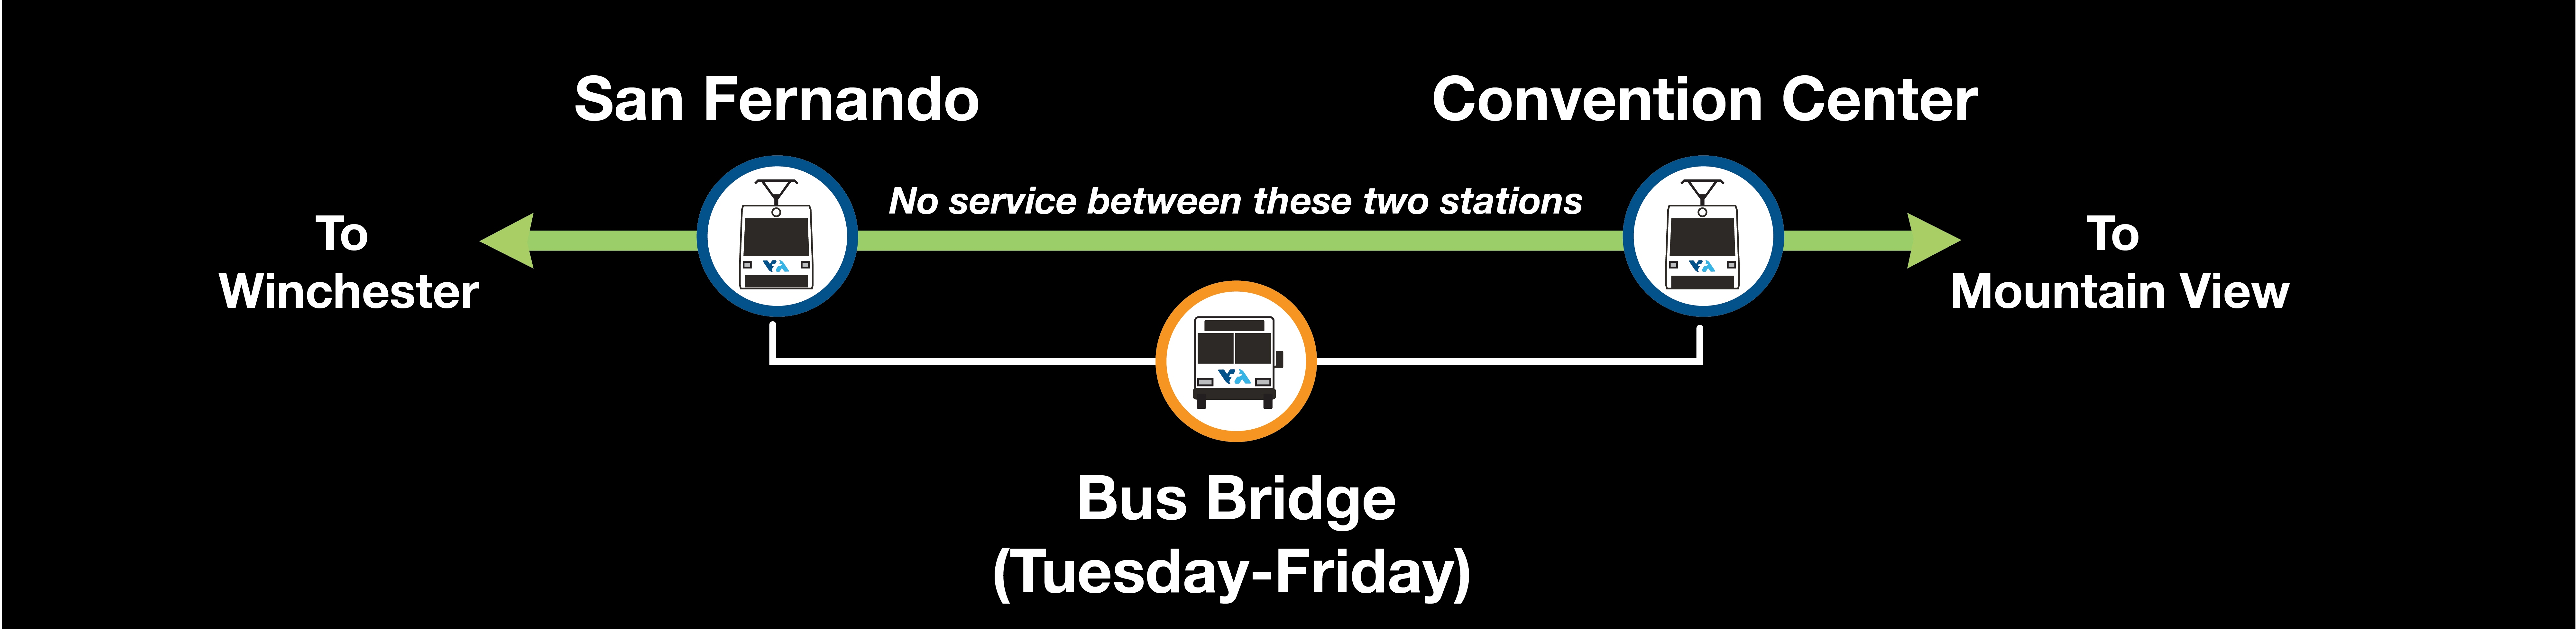 San Fernando to Convention Center Bus Bridge, January 16-18